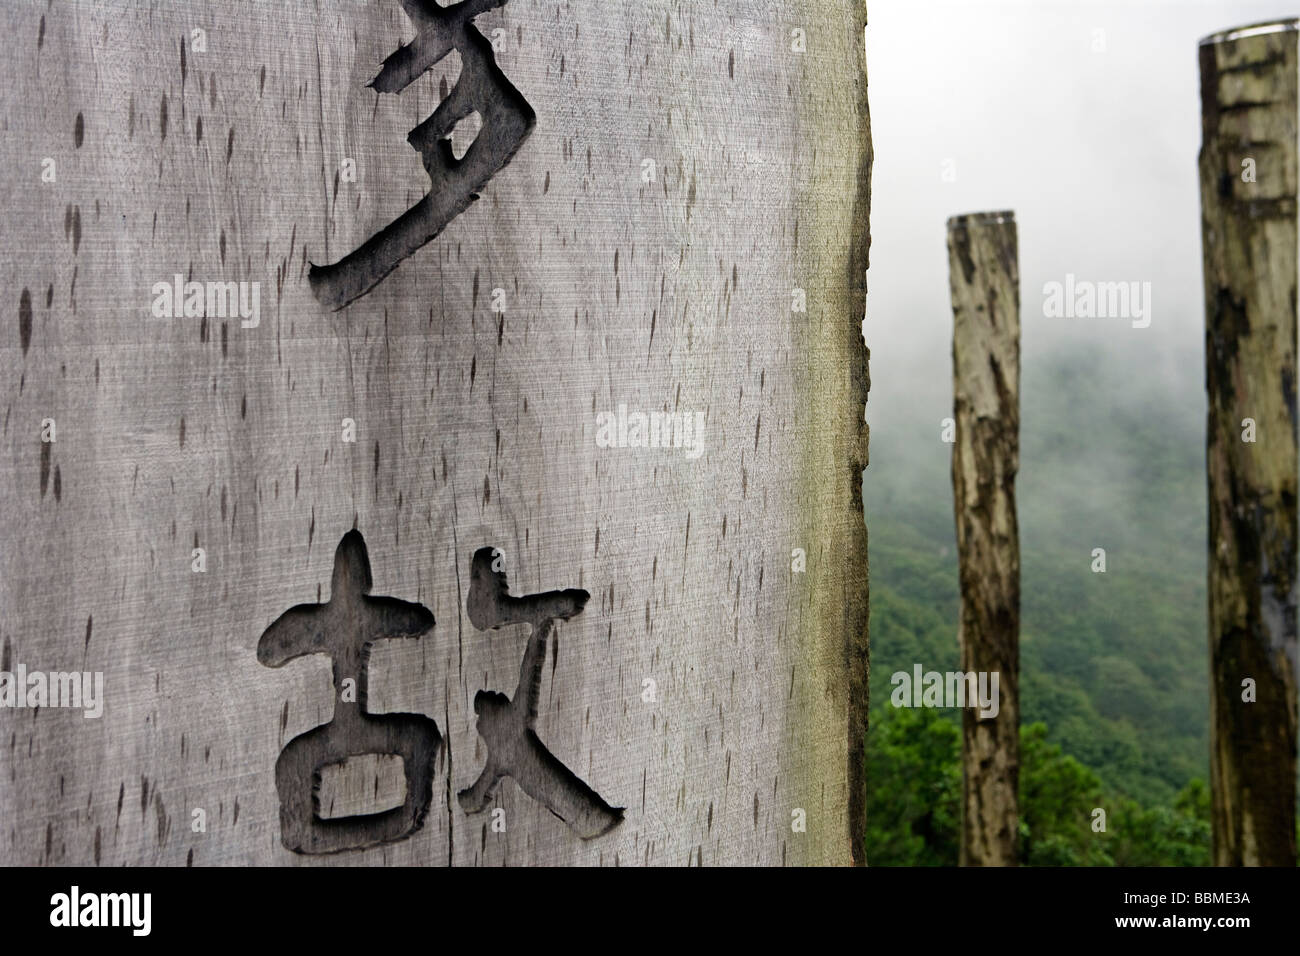 China, Hong Kong, Lantua Island. The Wisdom trail. The outdoor wooden version of the 260-word prayer is on 38 wooden - Stock Image